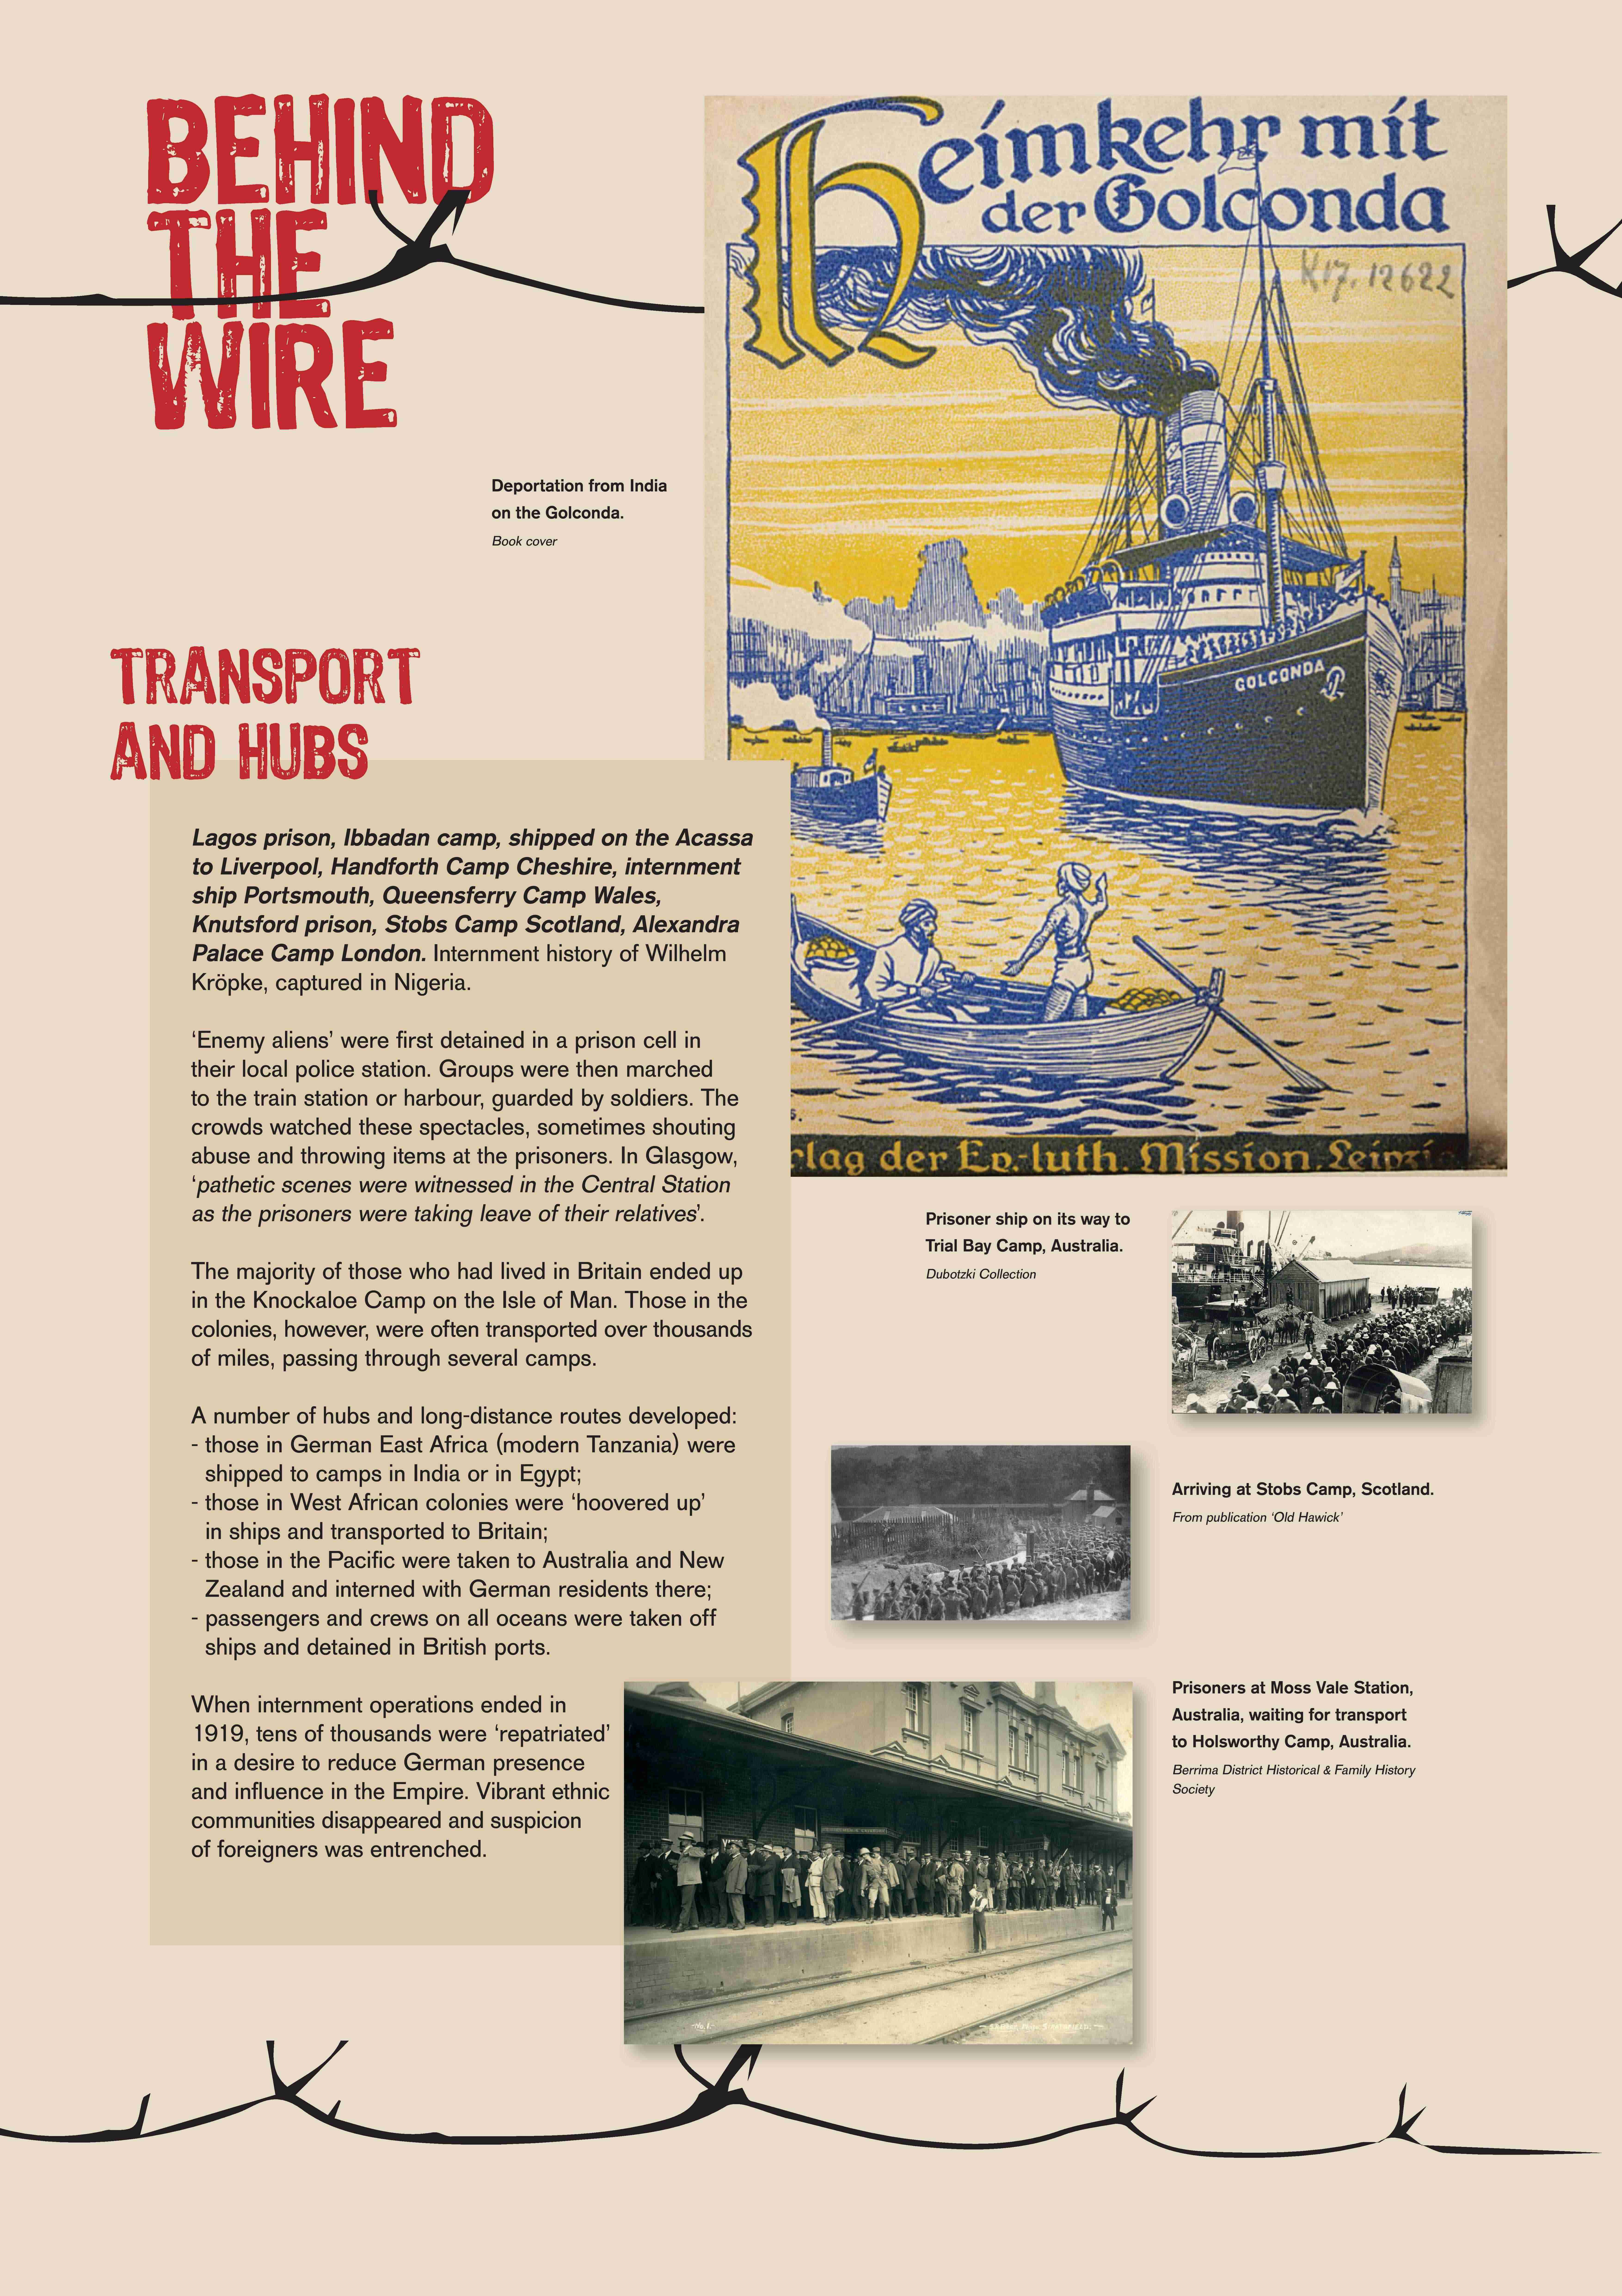 03-Behind the Wire-A1-Exhibition-Transport_DIGITAL VERSION-page-001-min-compressed